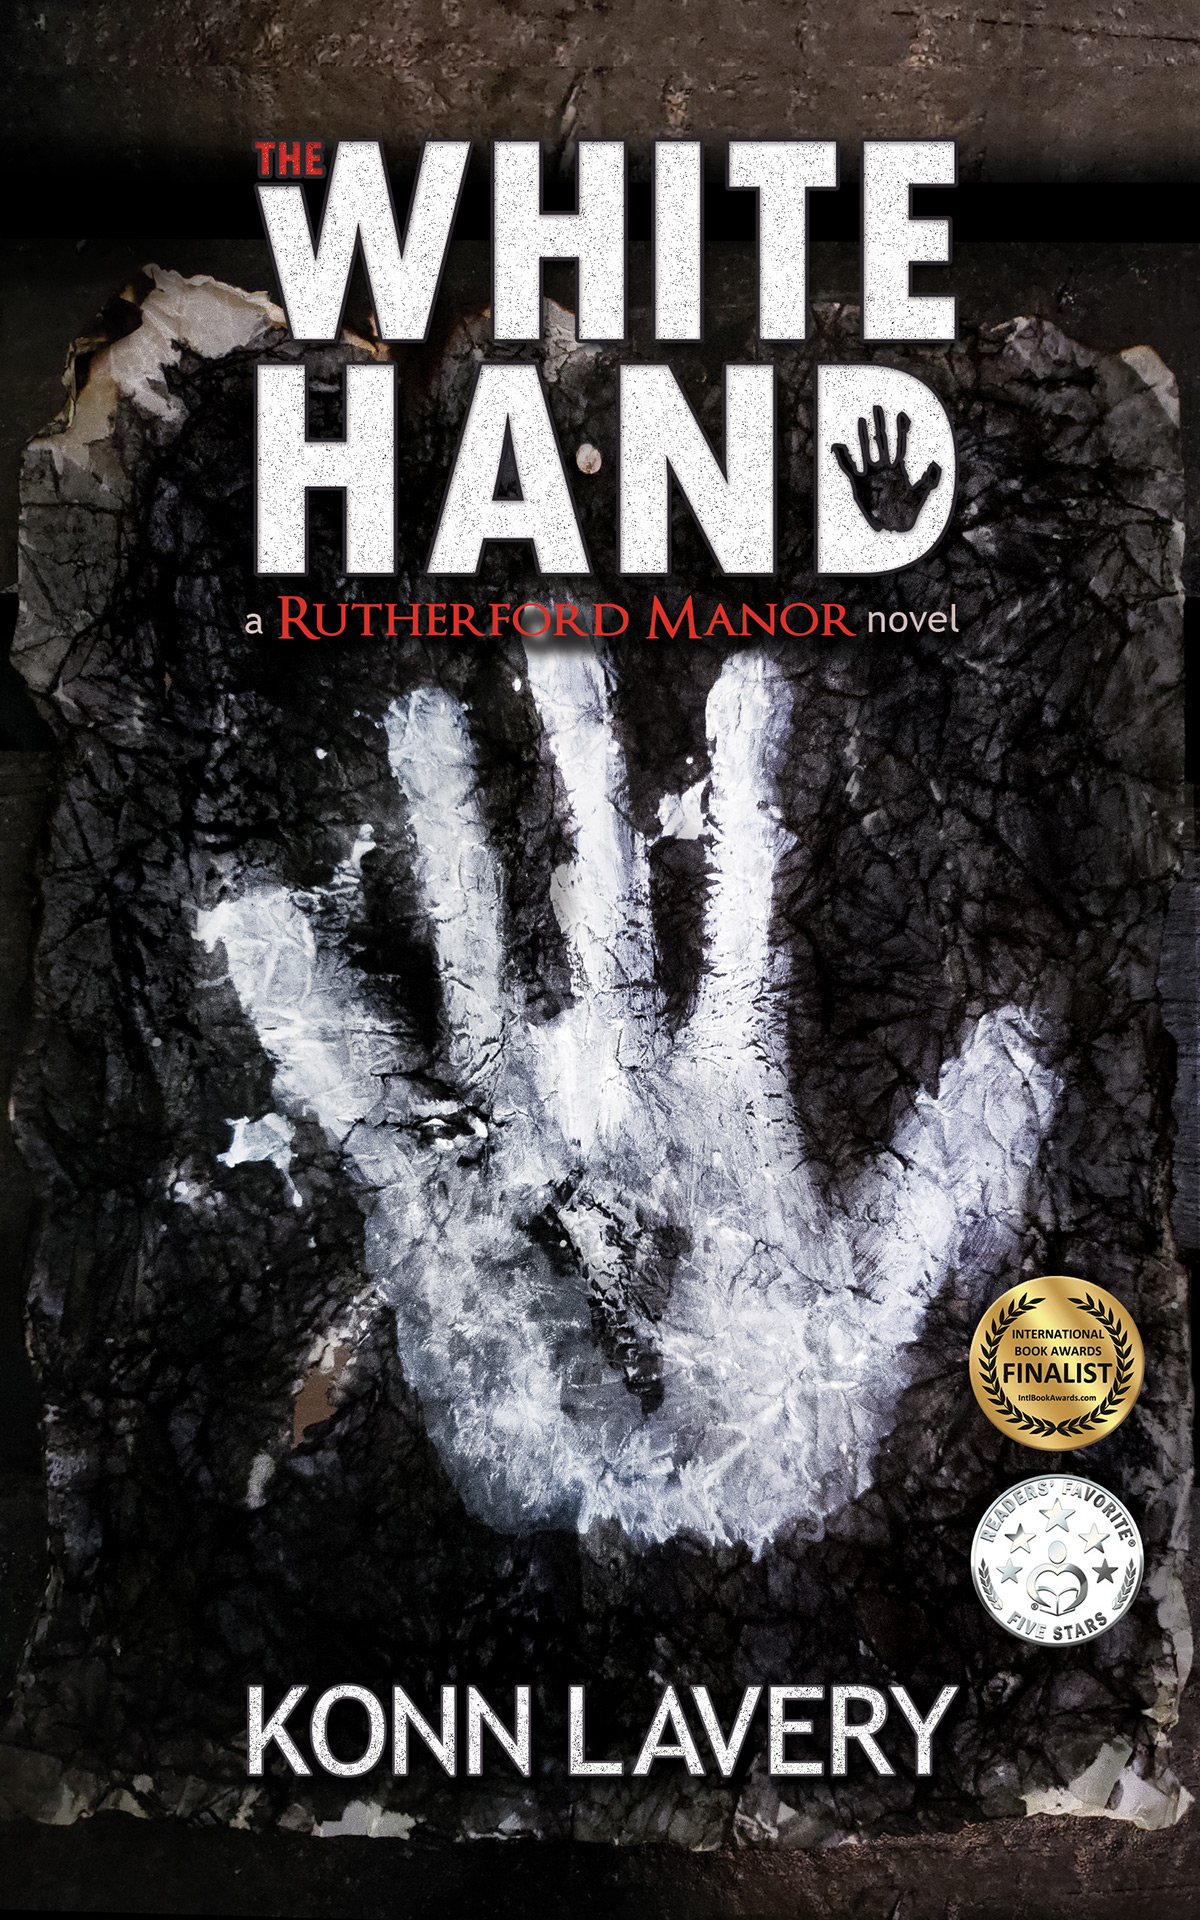 The White Hand Cover Art